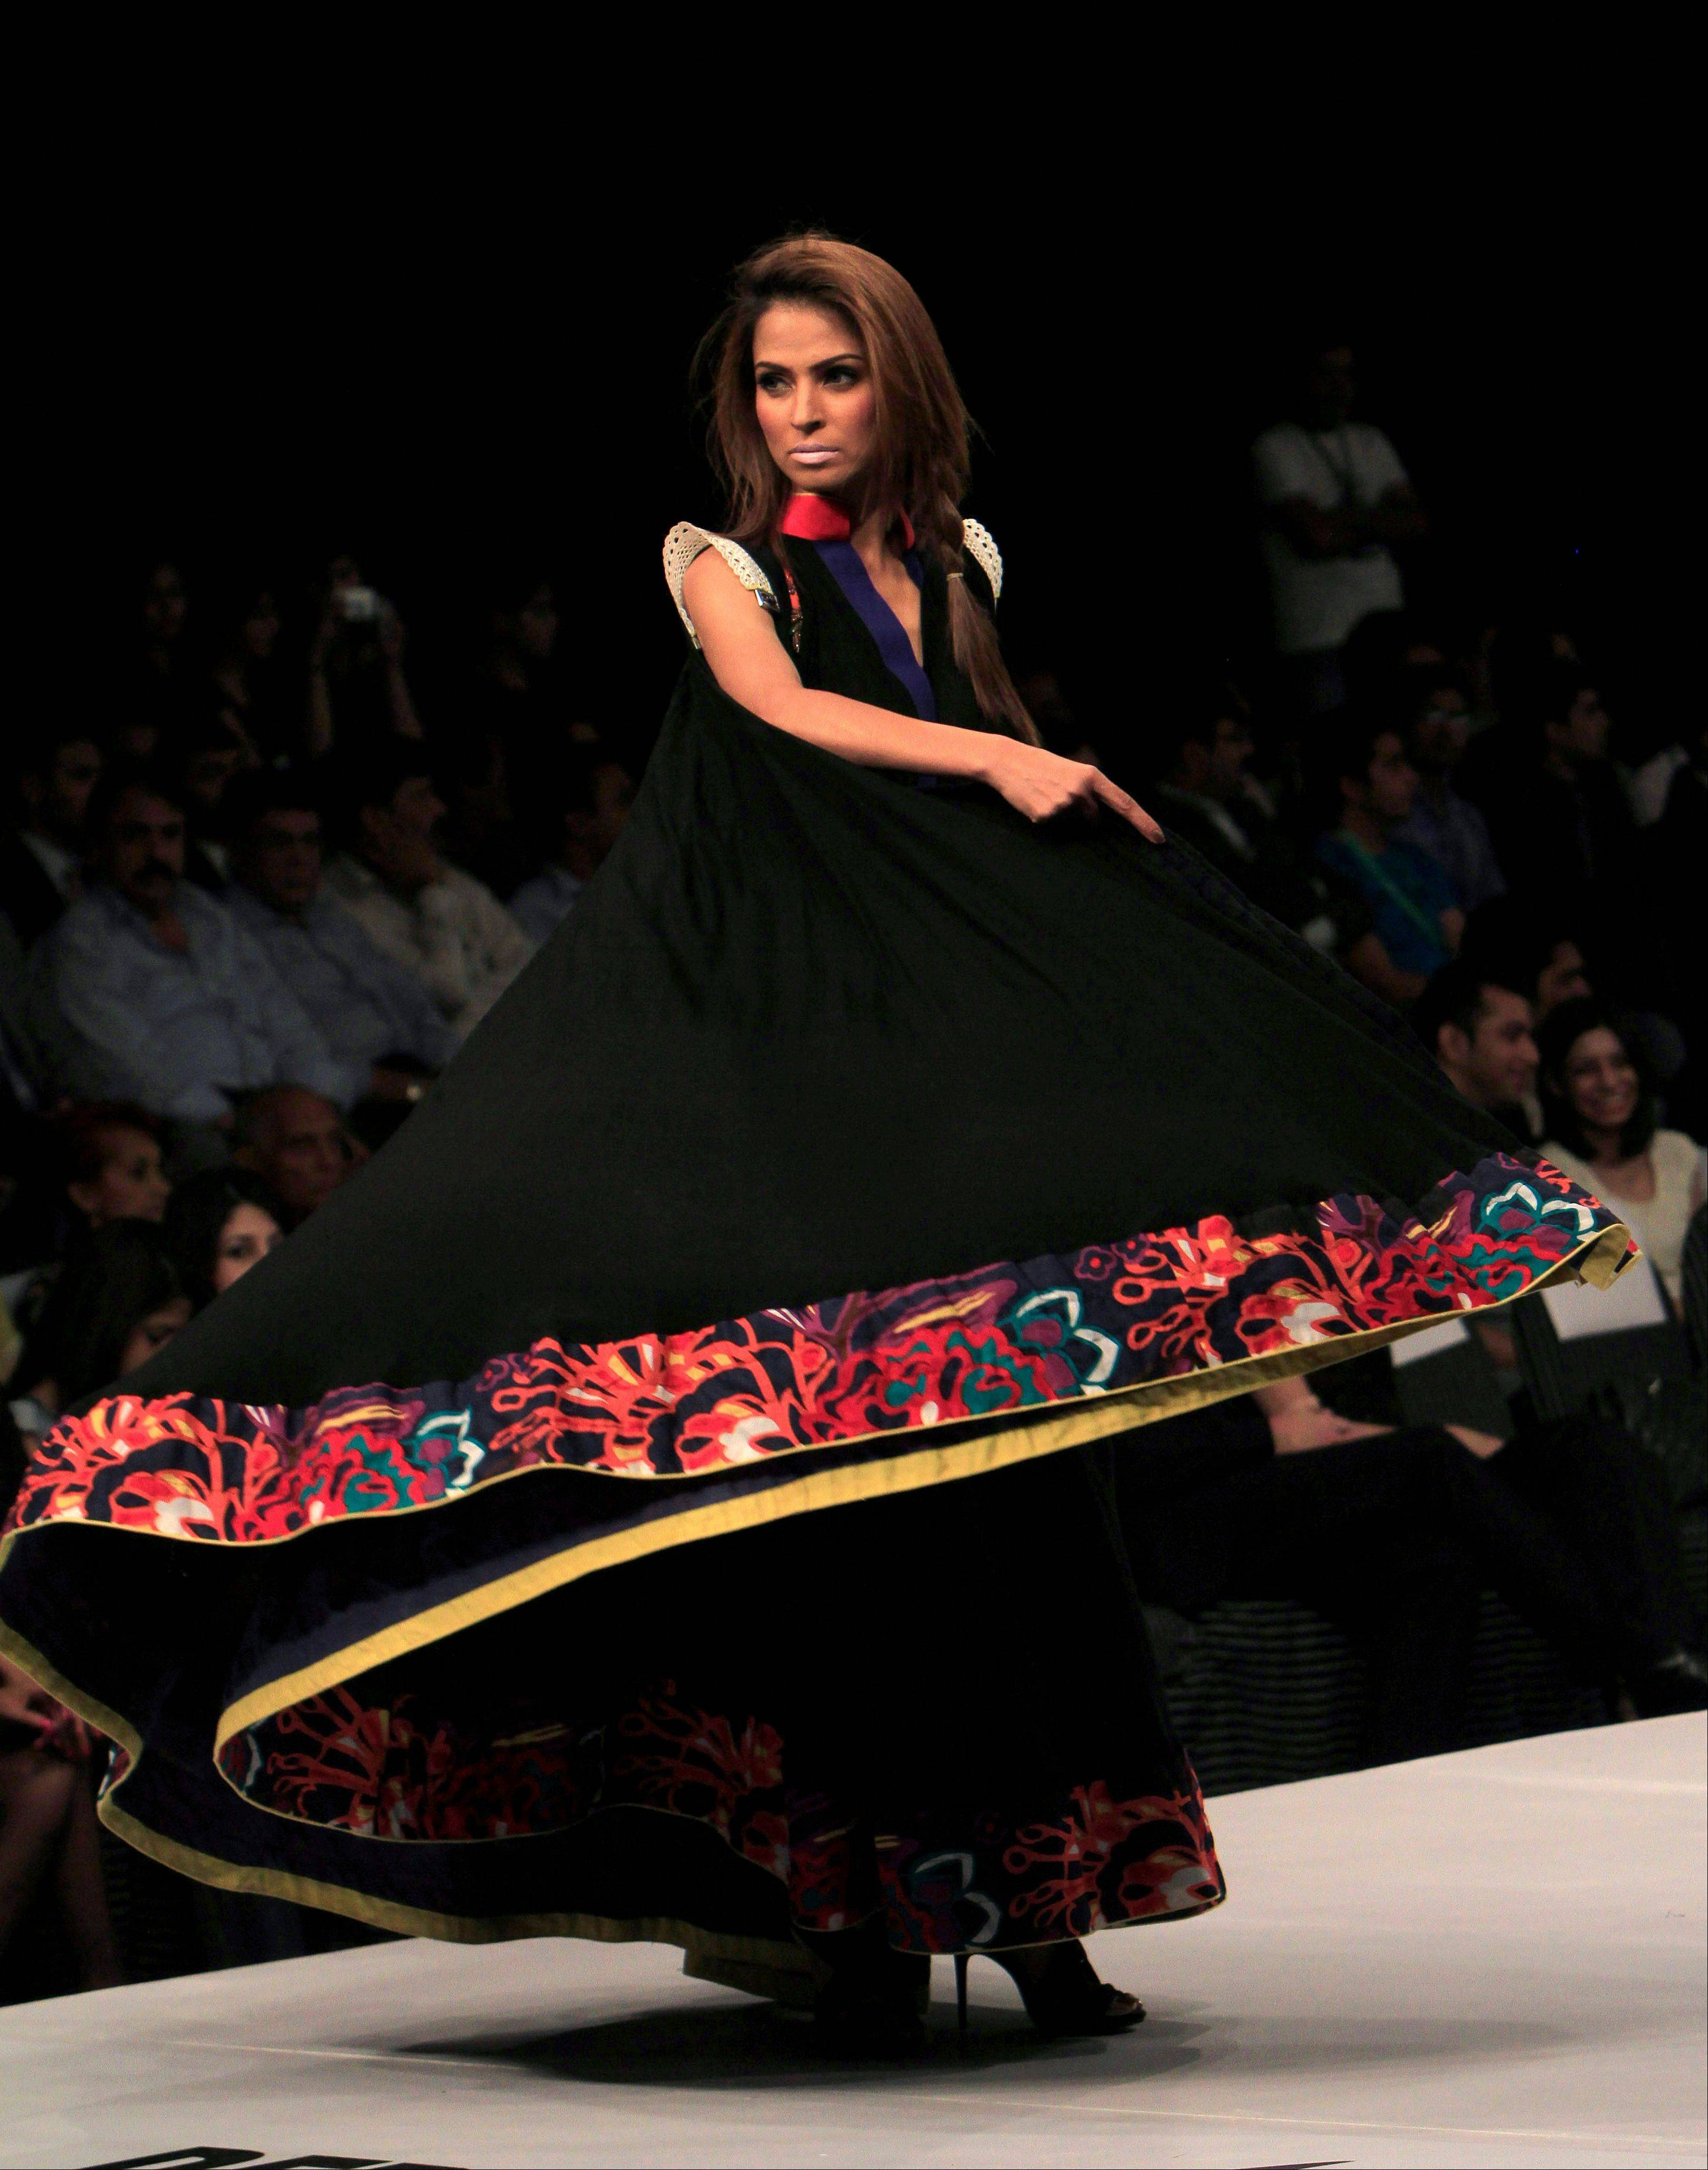 A model presents a creation of a Pakistani designer M Irfan Ali during a fashion show in Karachi, Pakistan on Friday, Oct. 21, 2011.